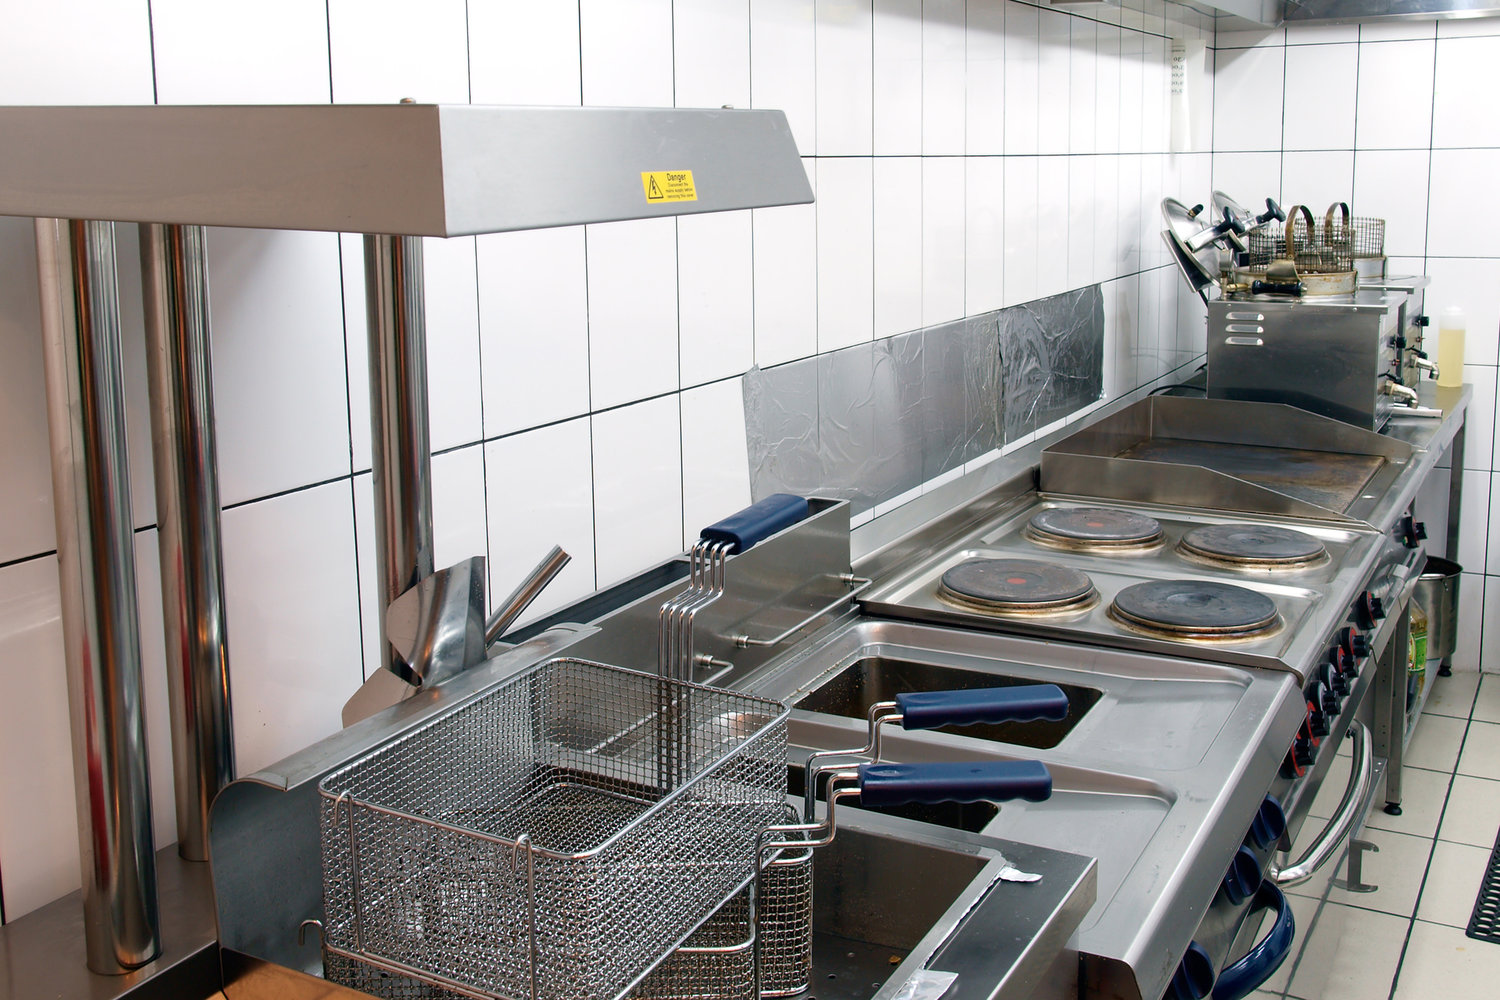 Grease Trap Cleaning Maintenance Service Smart Alternative Fuels